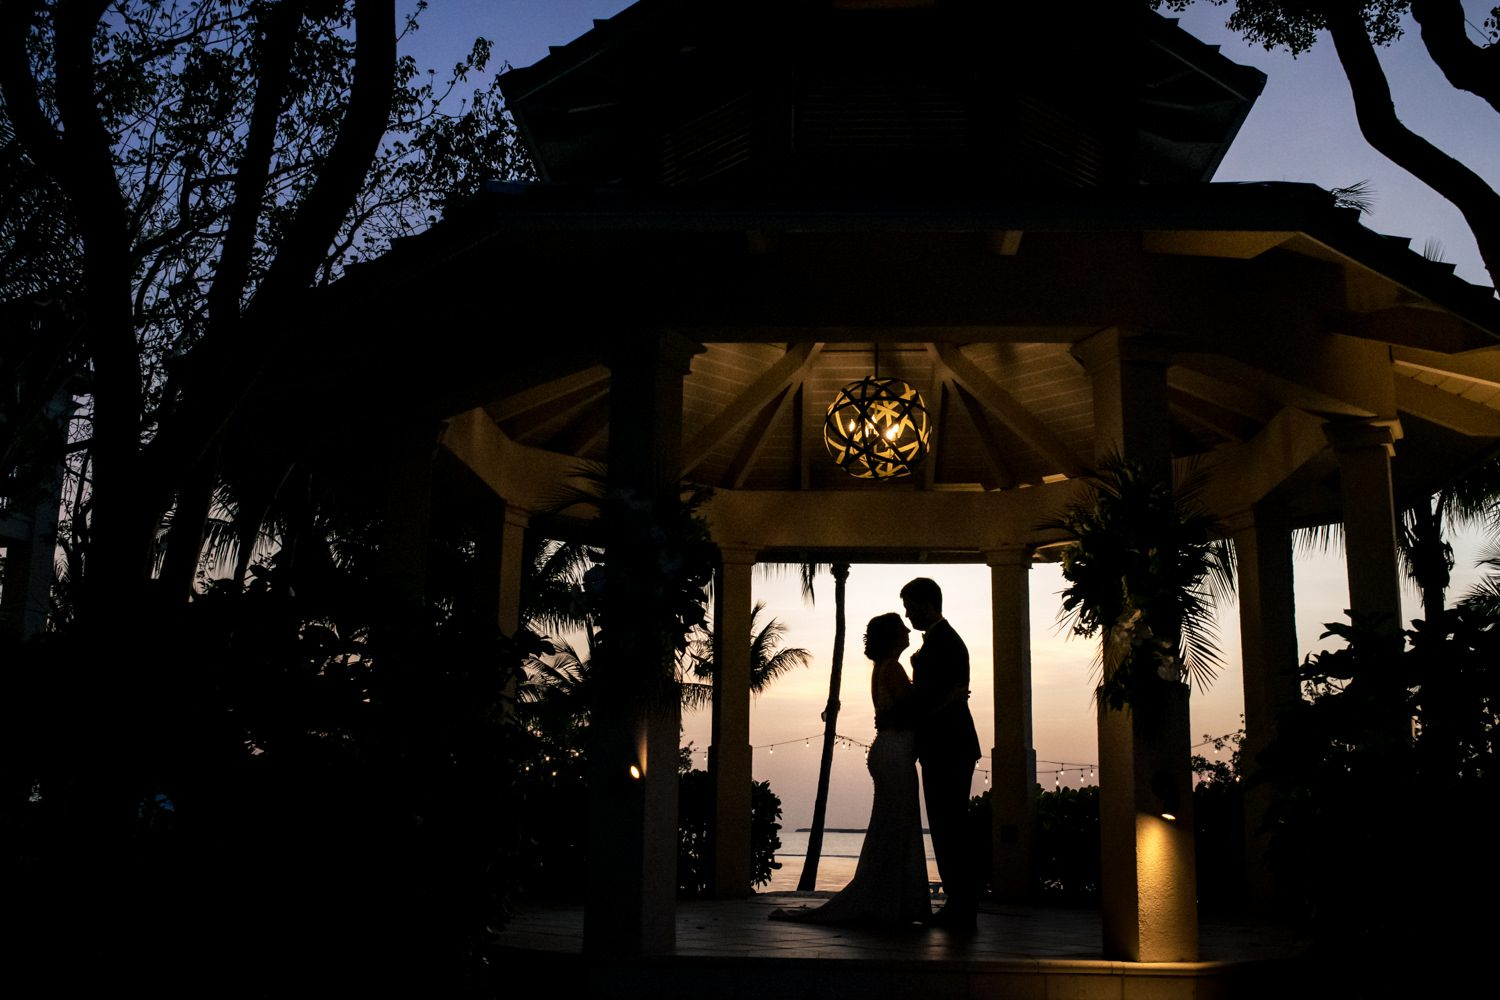 Silhouette of a couple embracing after their wedding ceremony